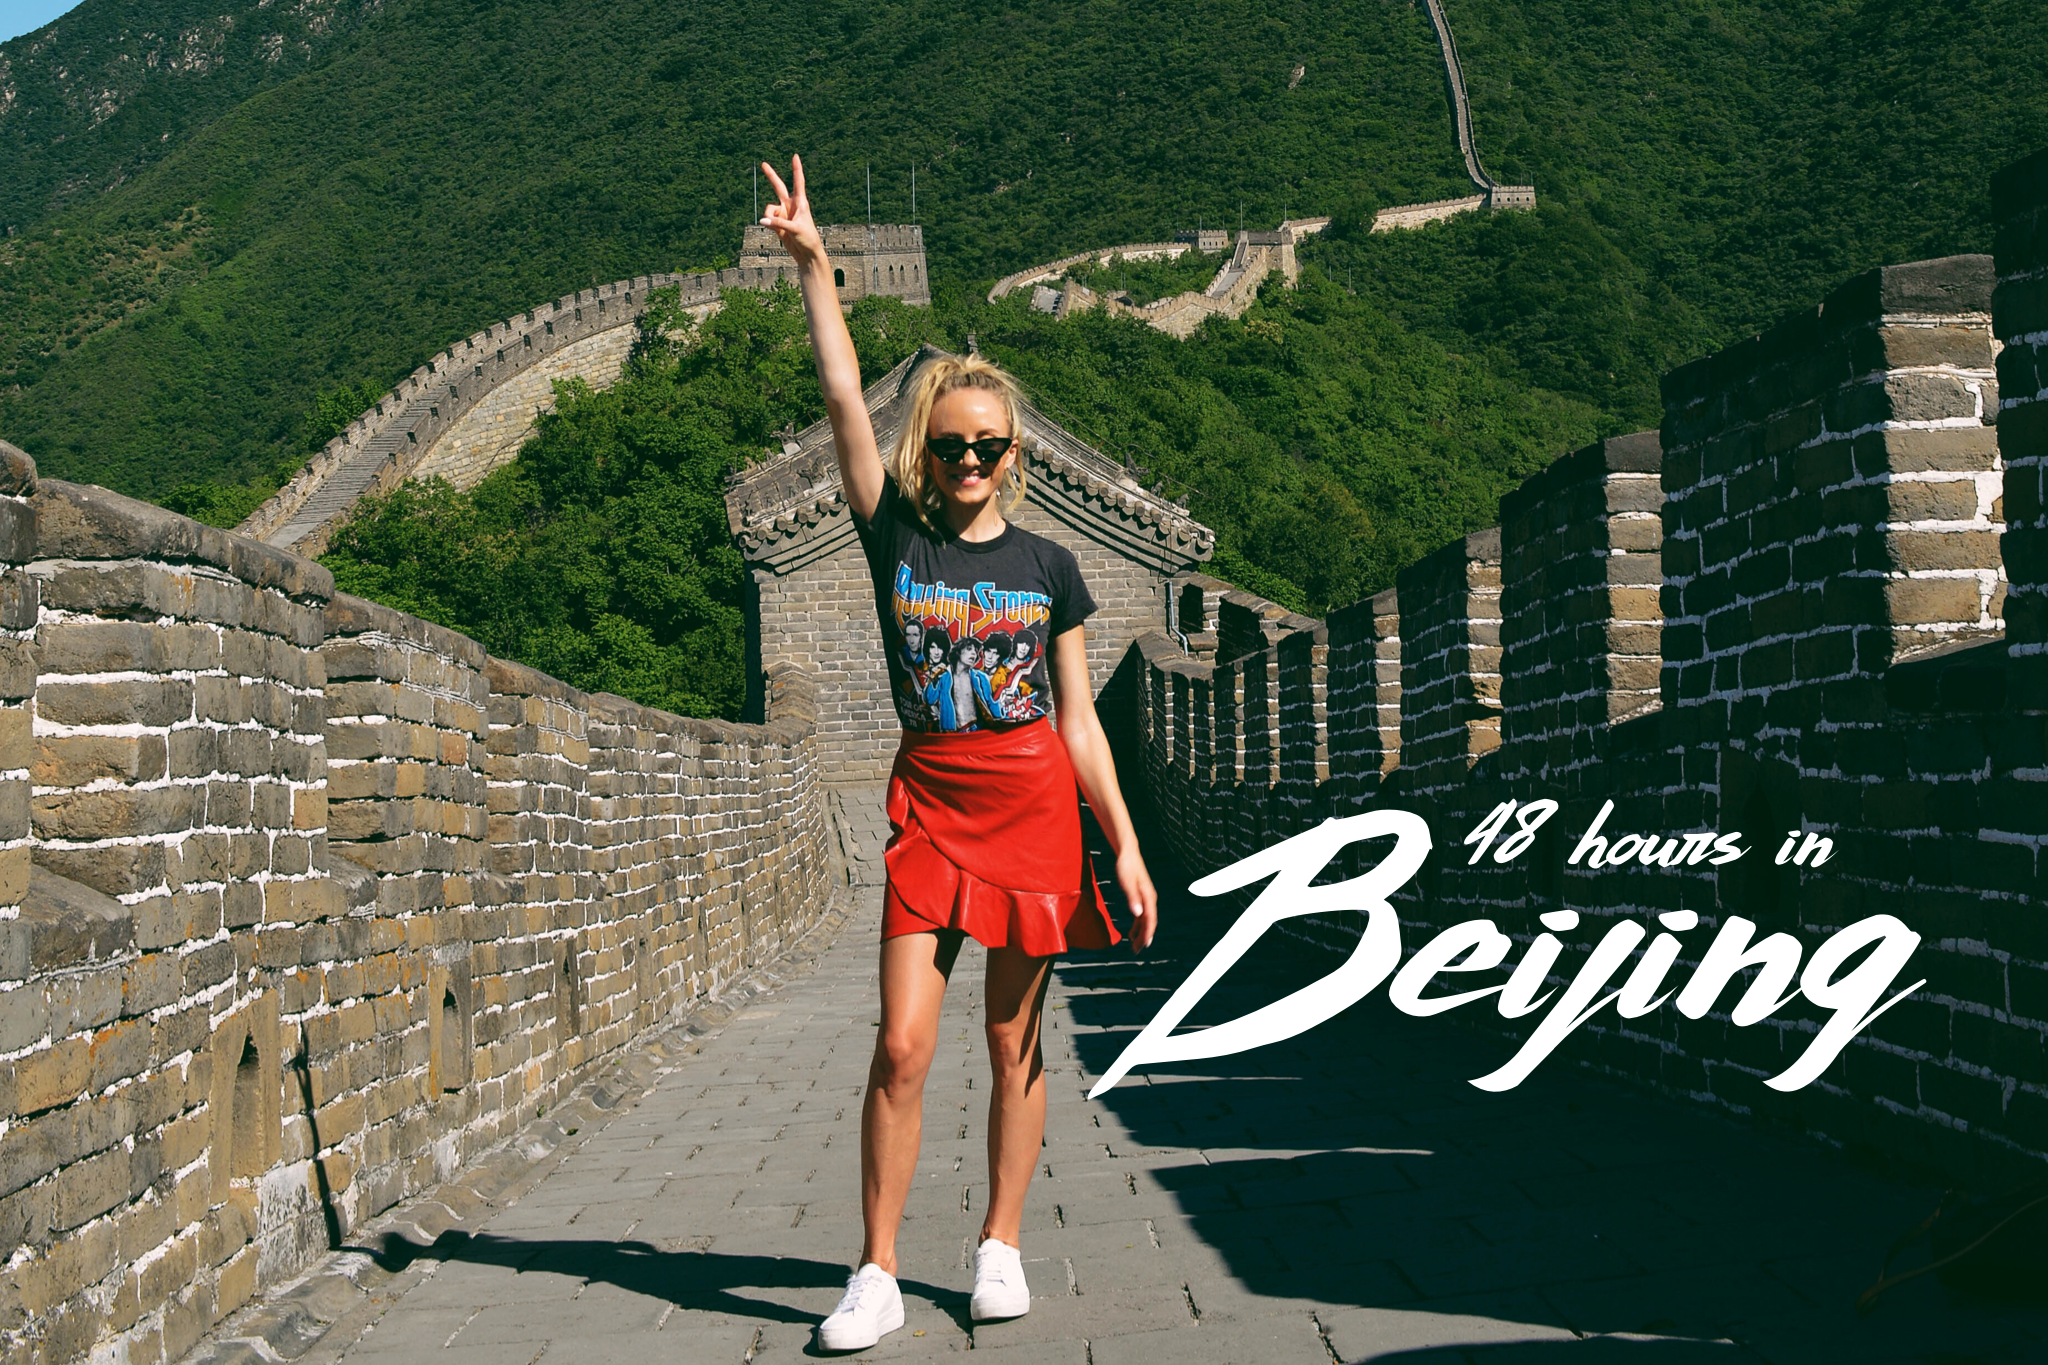 beijing_olympics_nastia_liukin_gymnast_allaround_champion_gold_medal_travel_guide_great_wall_of_china